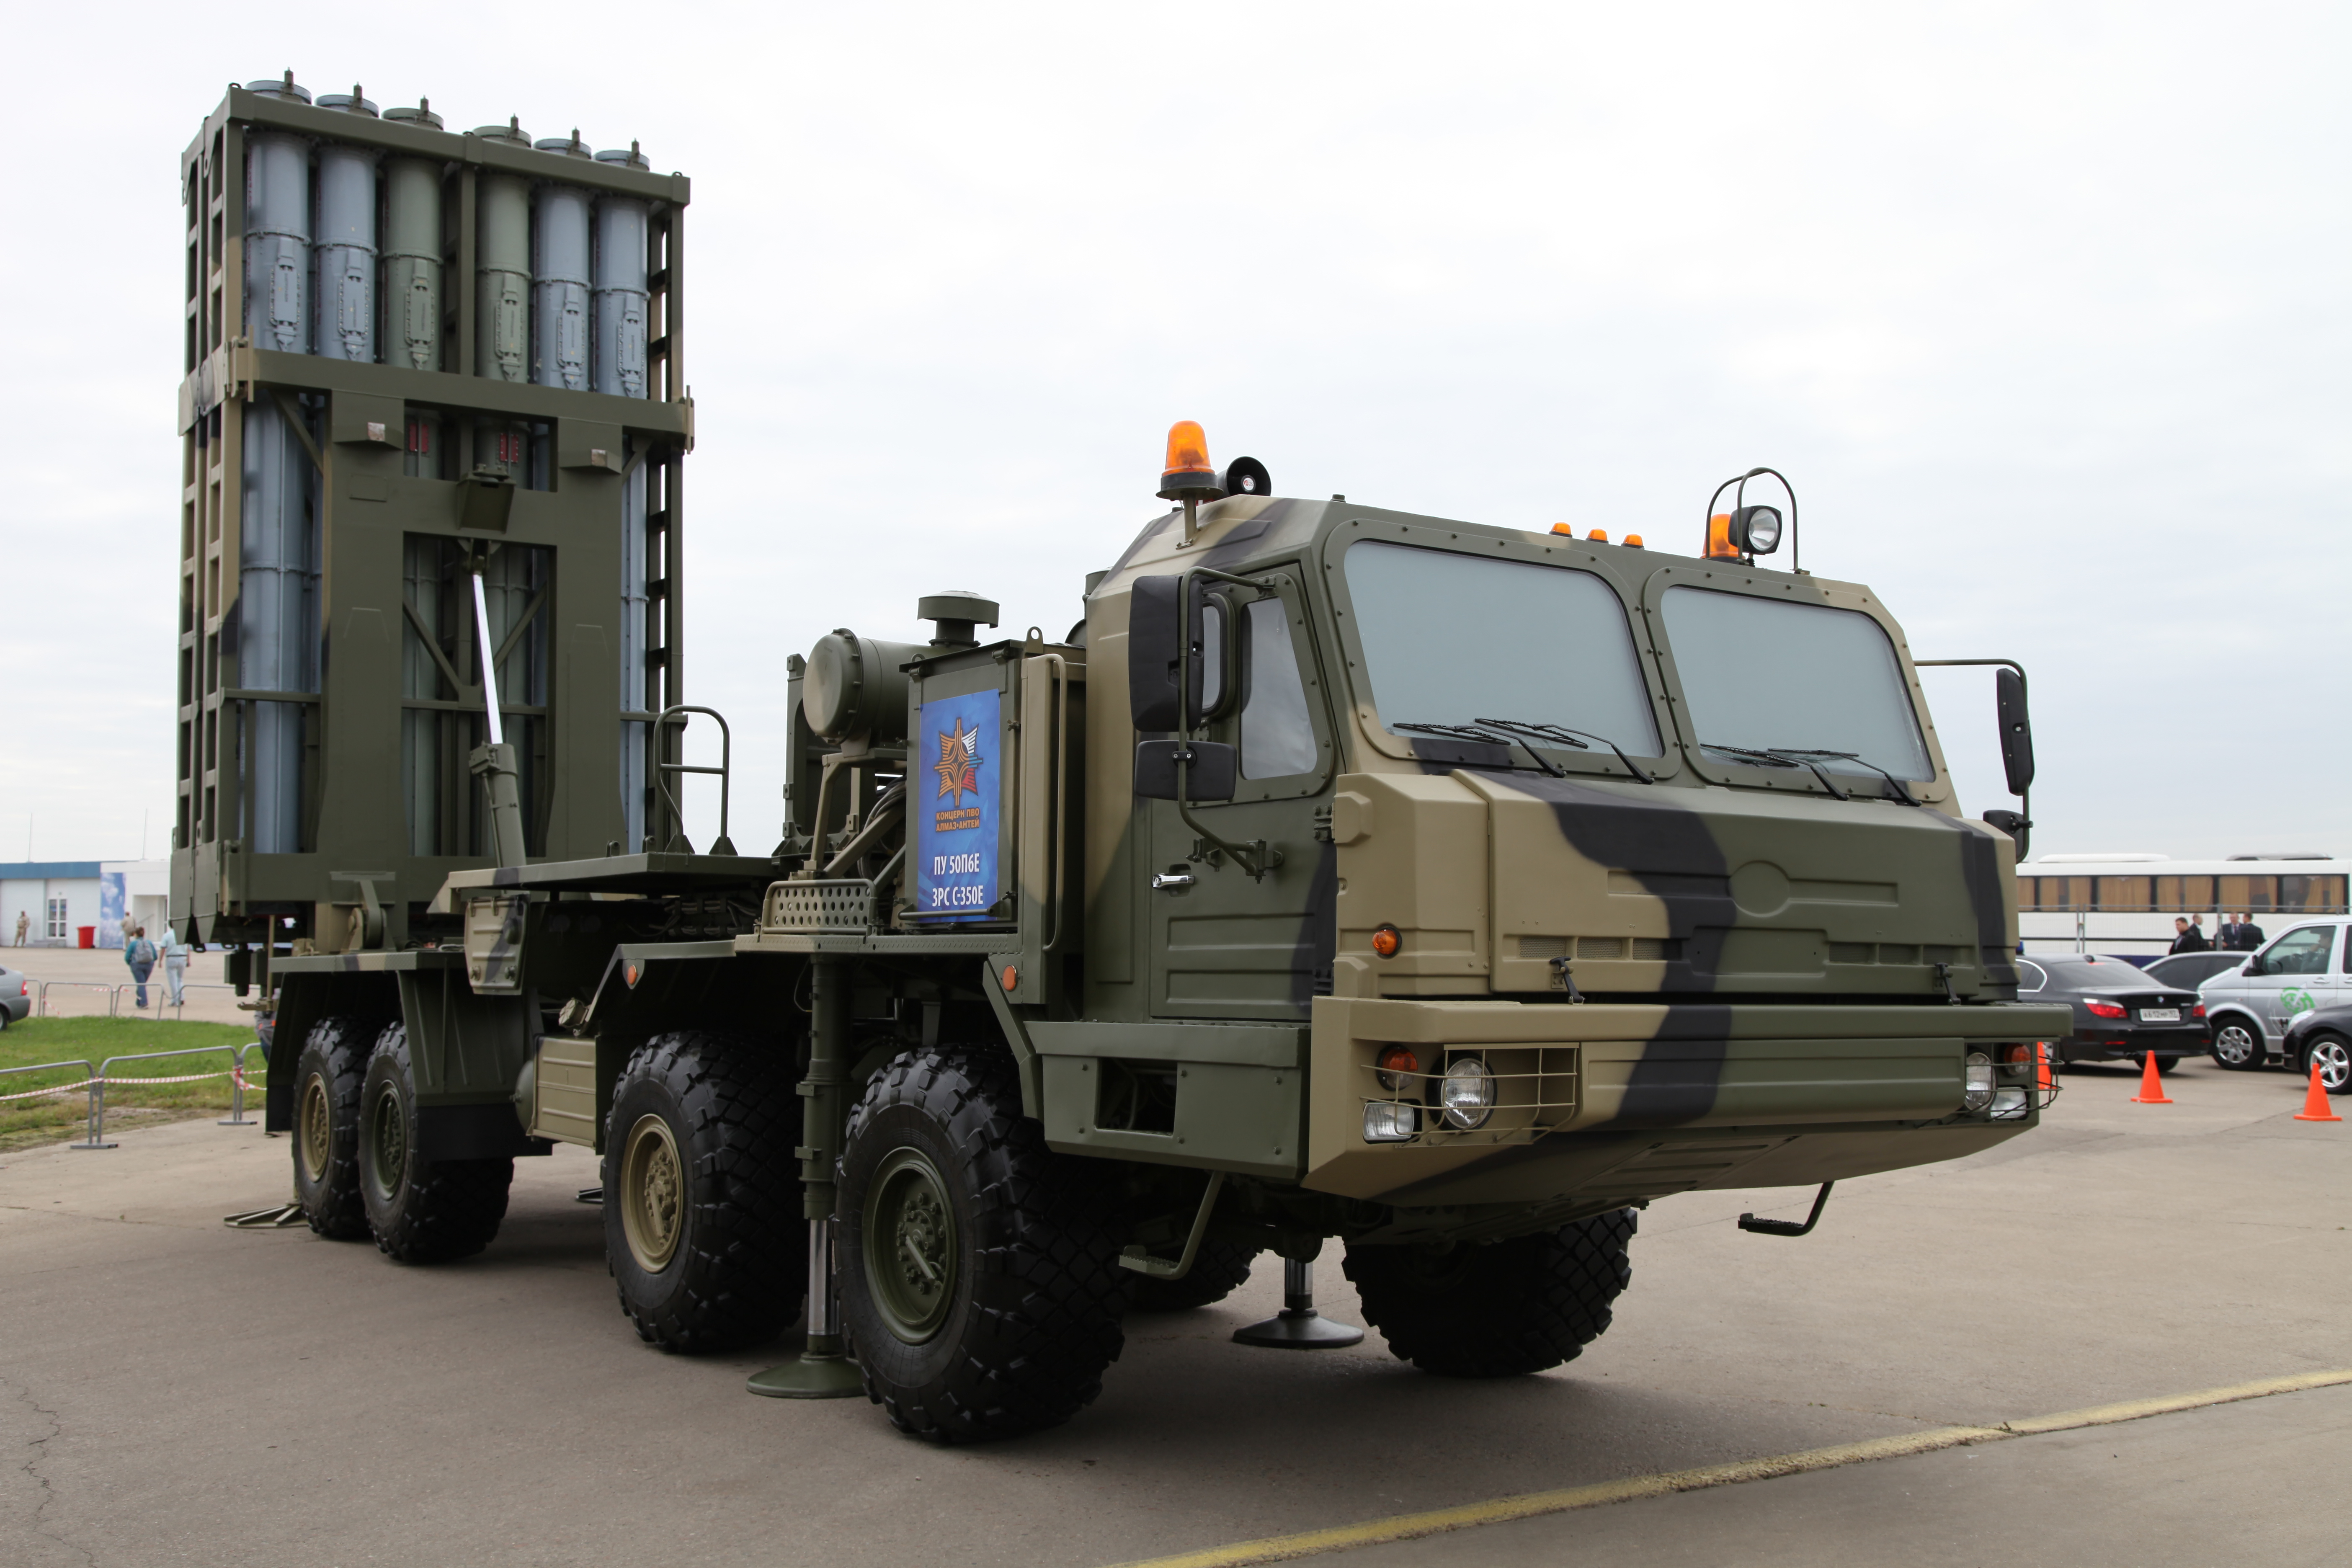 A 50P6E transporter erector launcher, the launcher element of the S-350E system upon which Poliment-Redut is based.